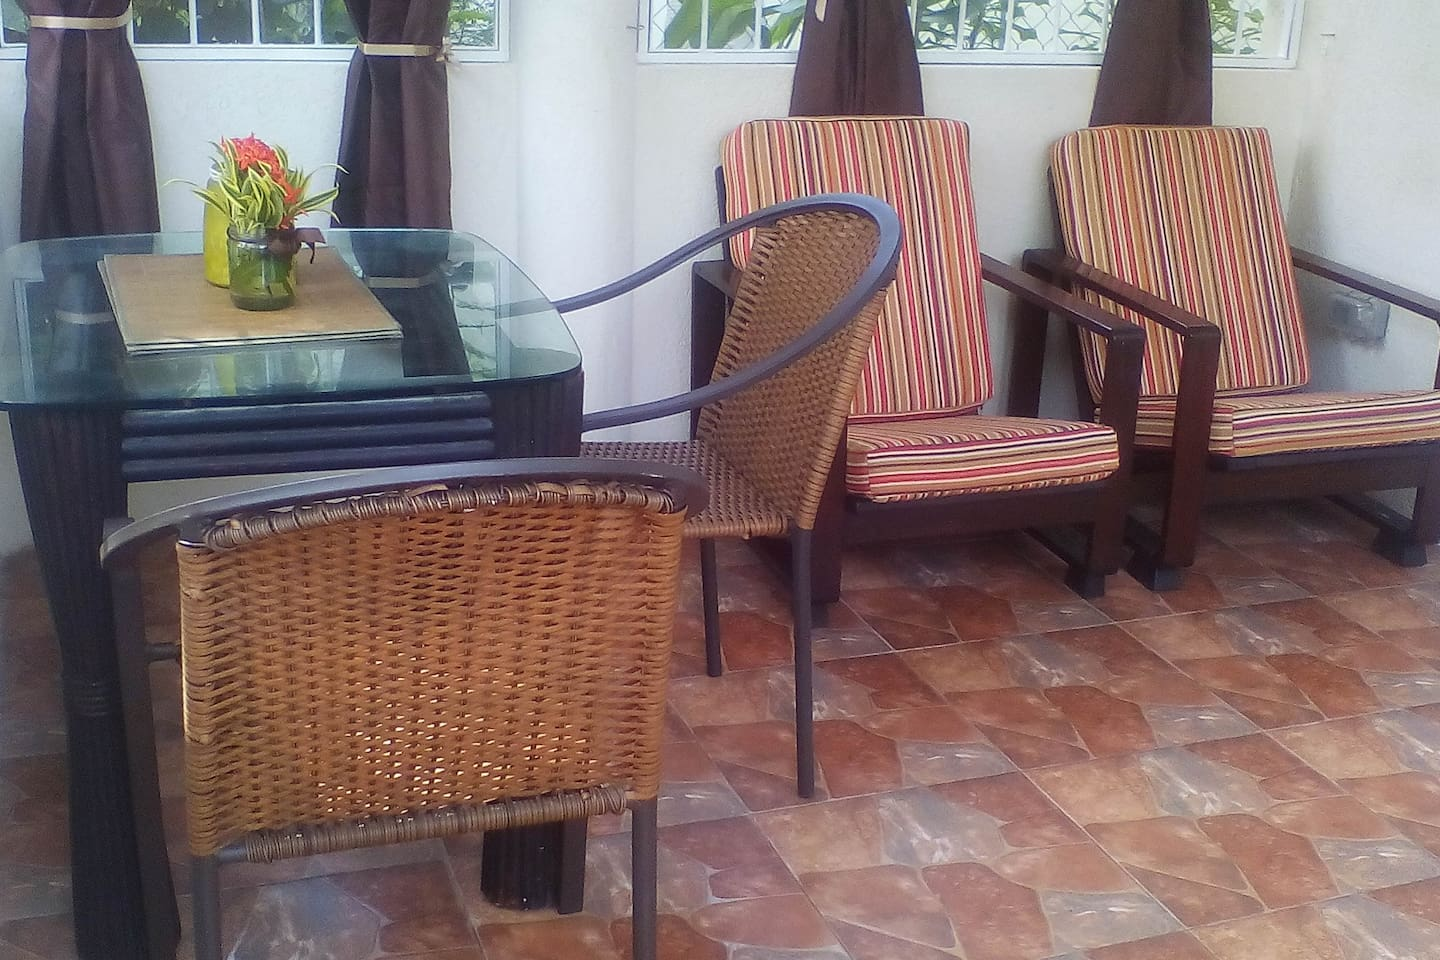 Enclosed patio with security bars, and insect screens. Sun loungers are also provided for relaxation and added comfort.